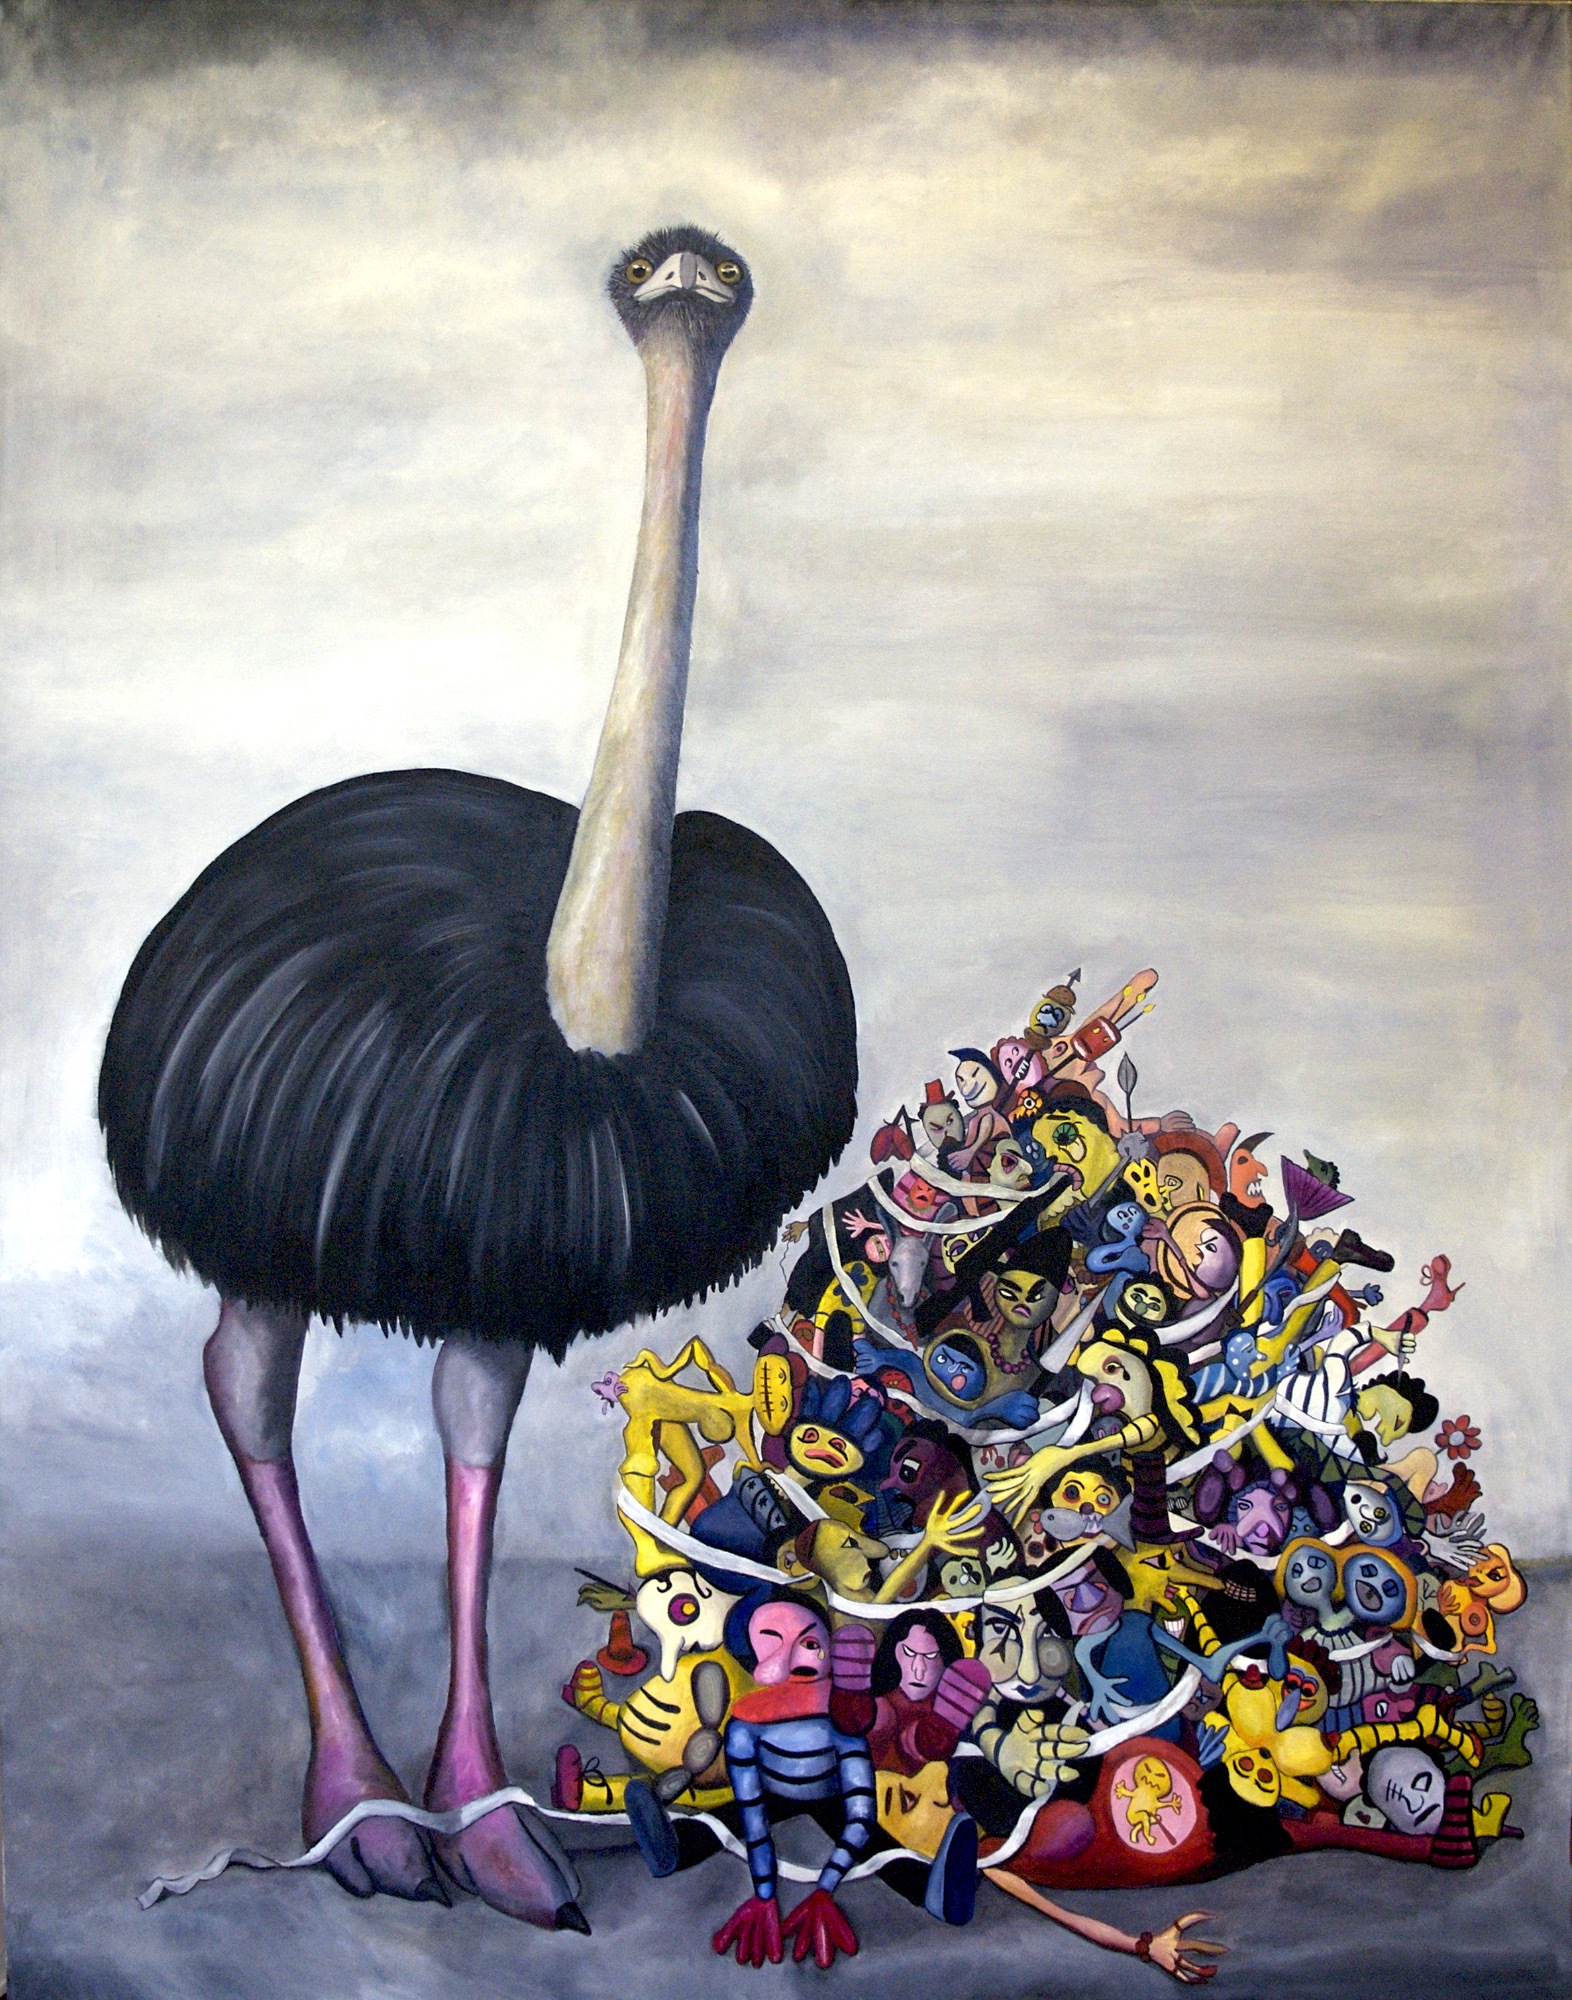 DER UNTERGANG (TRIPTYCH) THE OSTRICH - 155CM X 122CM - OIL ON CANVAS - 2008